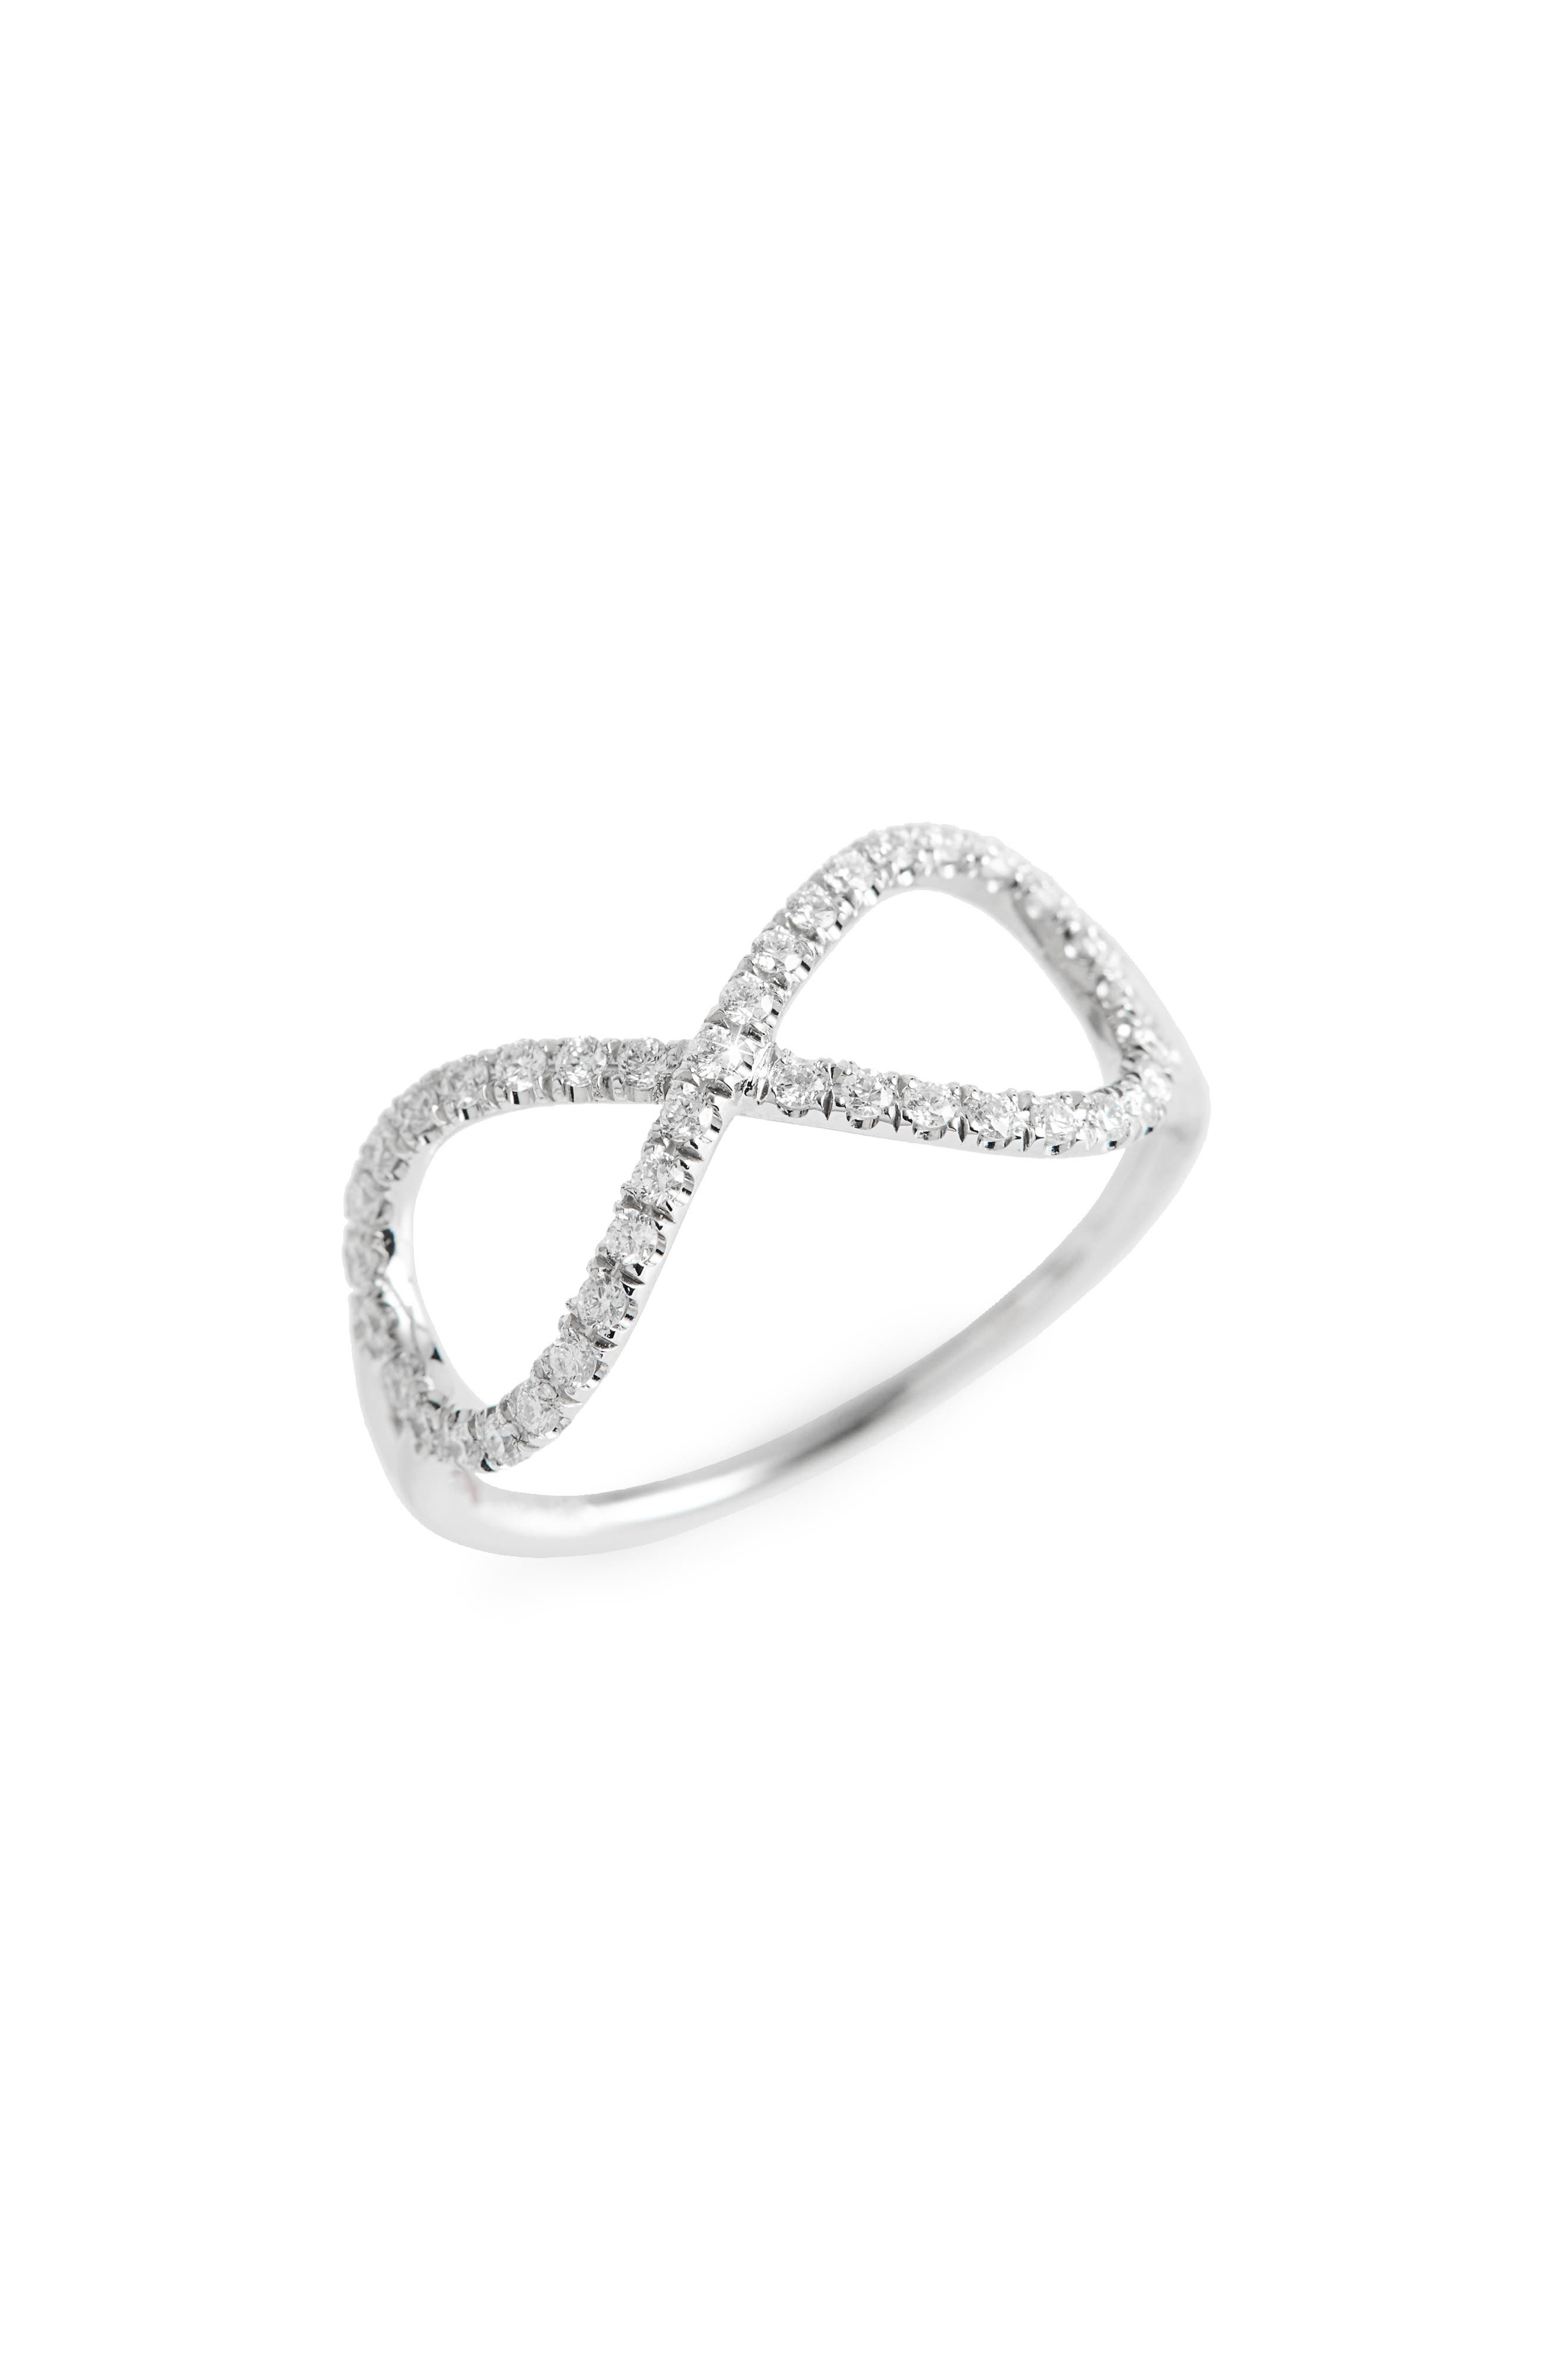 Diamond Infinity Ring,                         Main,                         color, WHITE GOLD